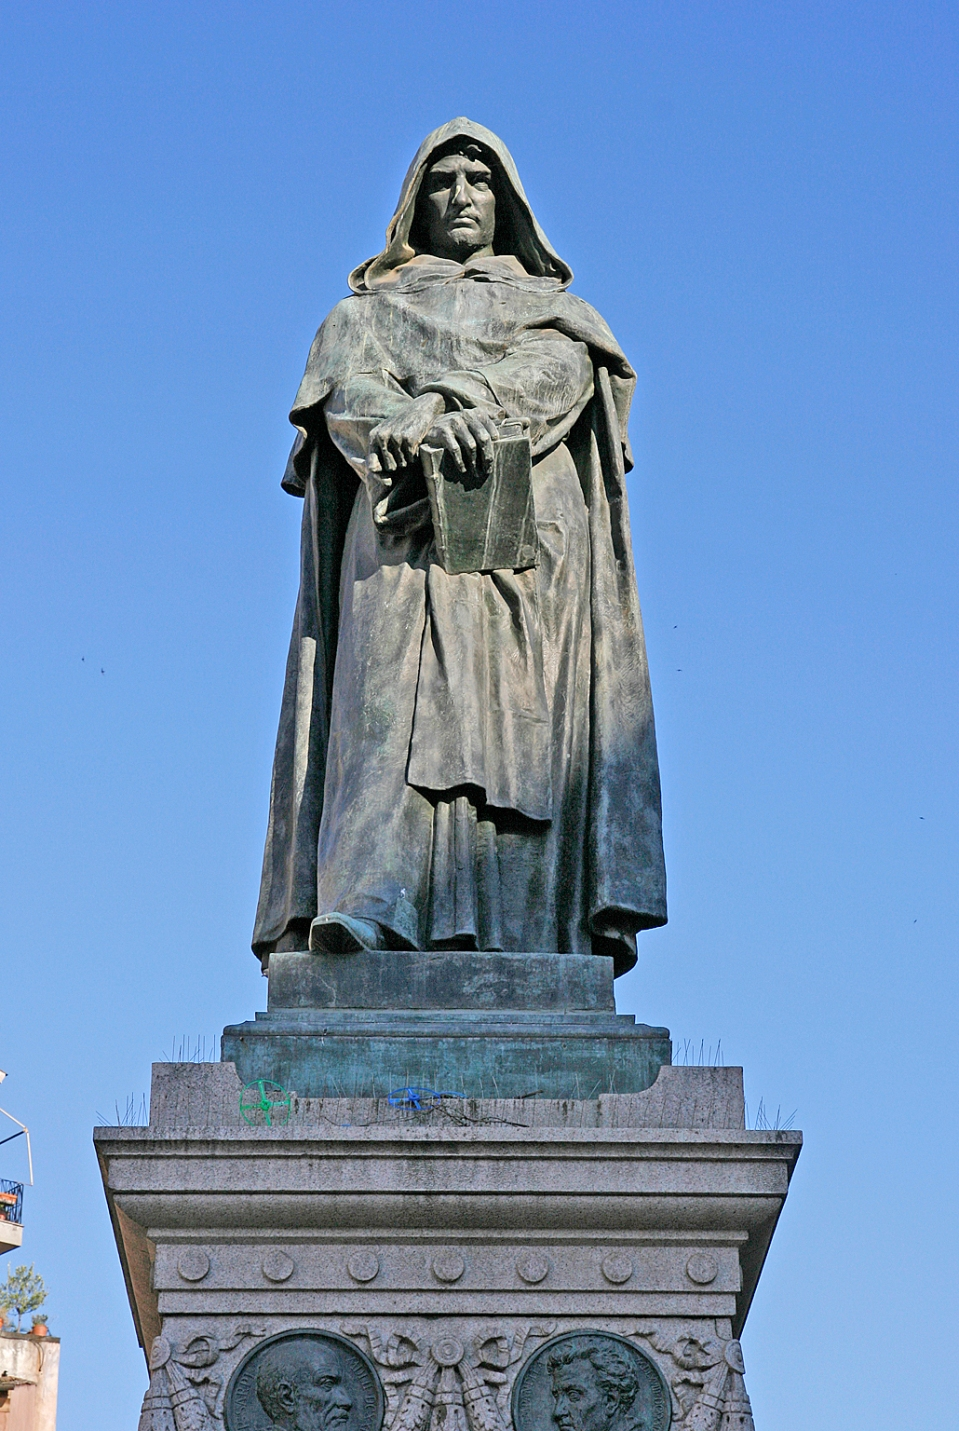 The Statue of philosopher Giordano Bruno, burned at the stake in the Campo by the Vatican, was erected at Campo de' Fiori in Rome, Italy, in 1889.